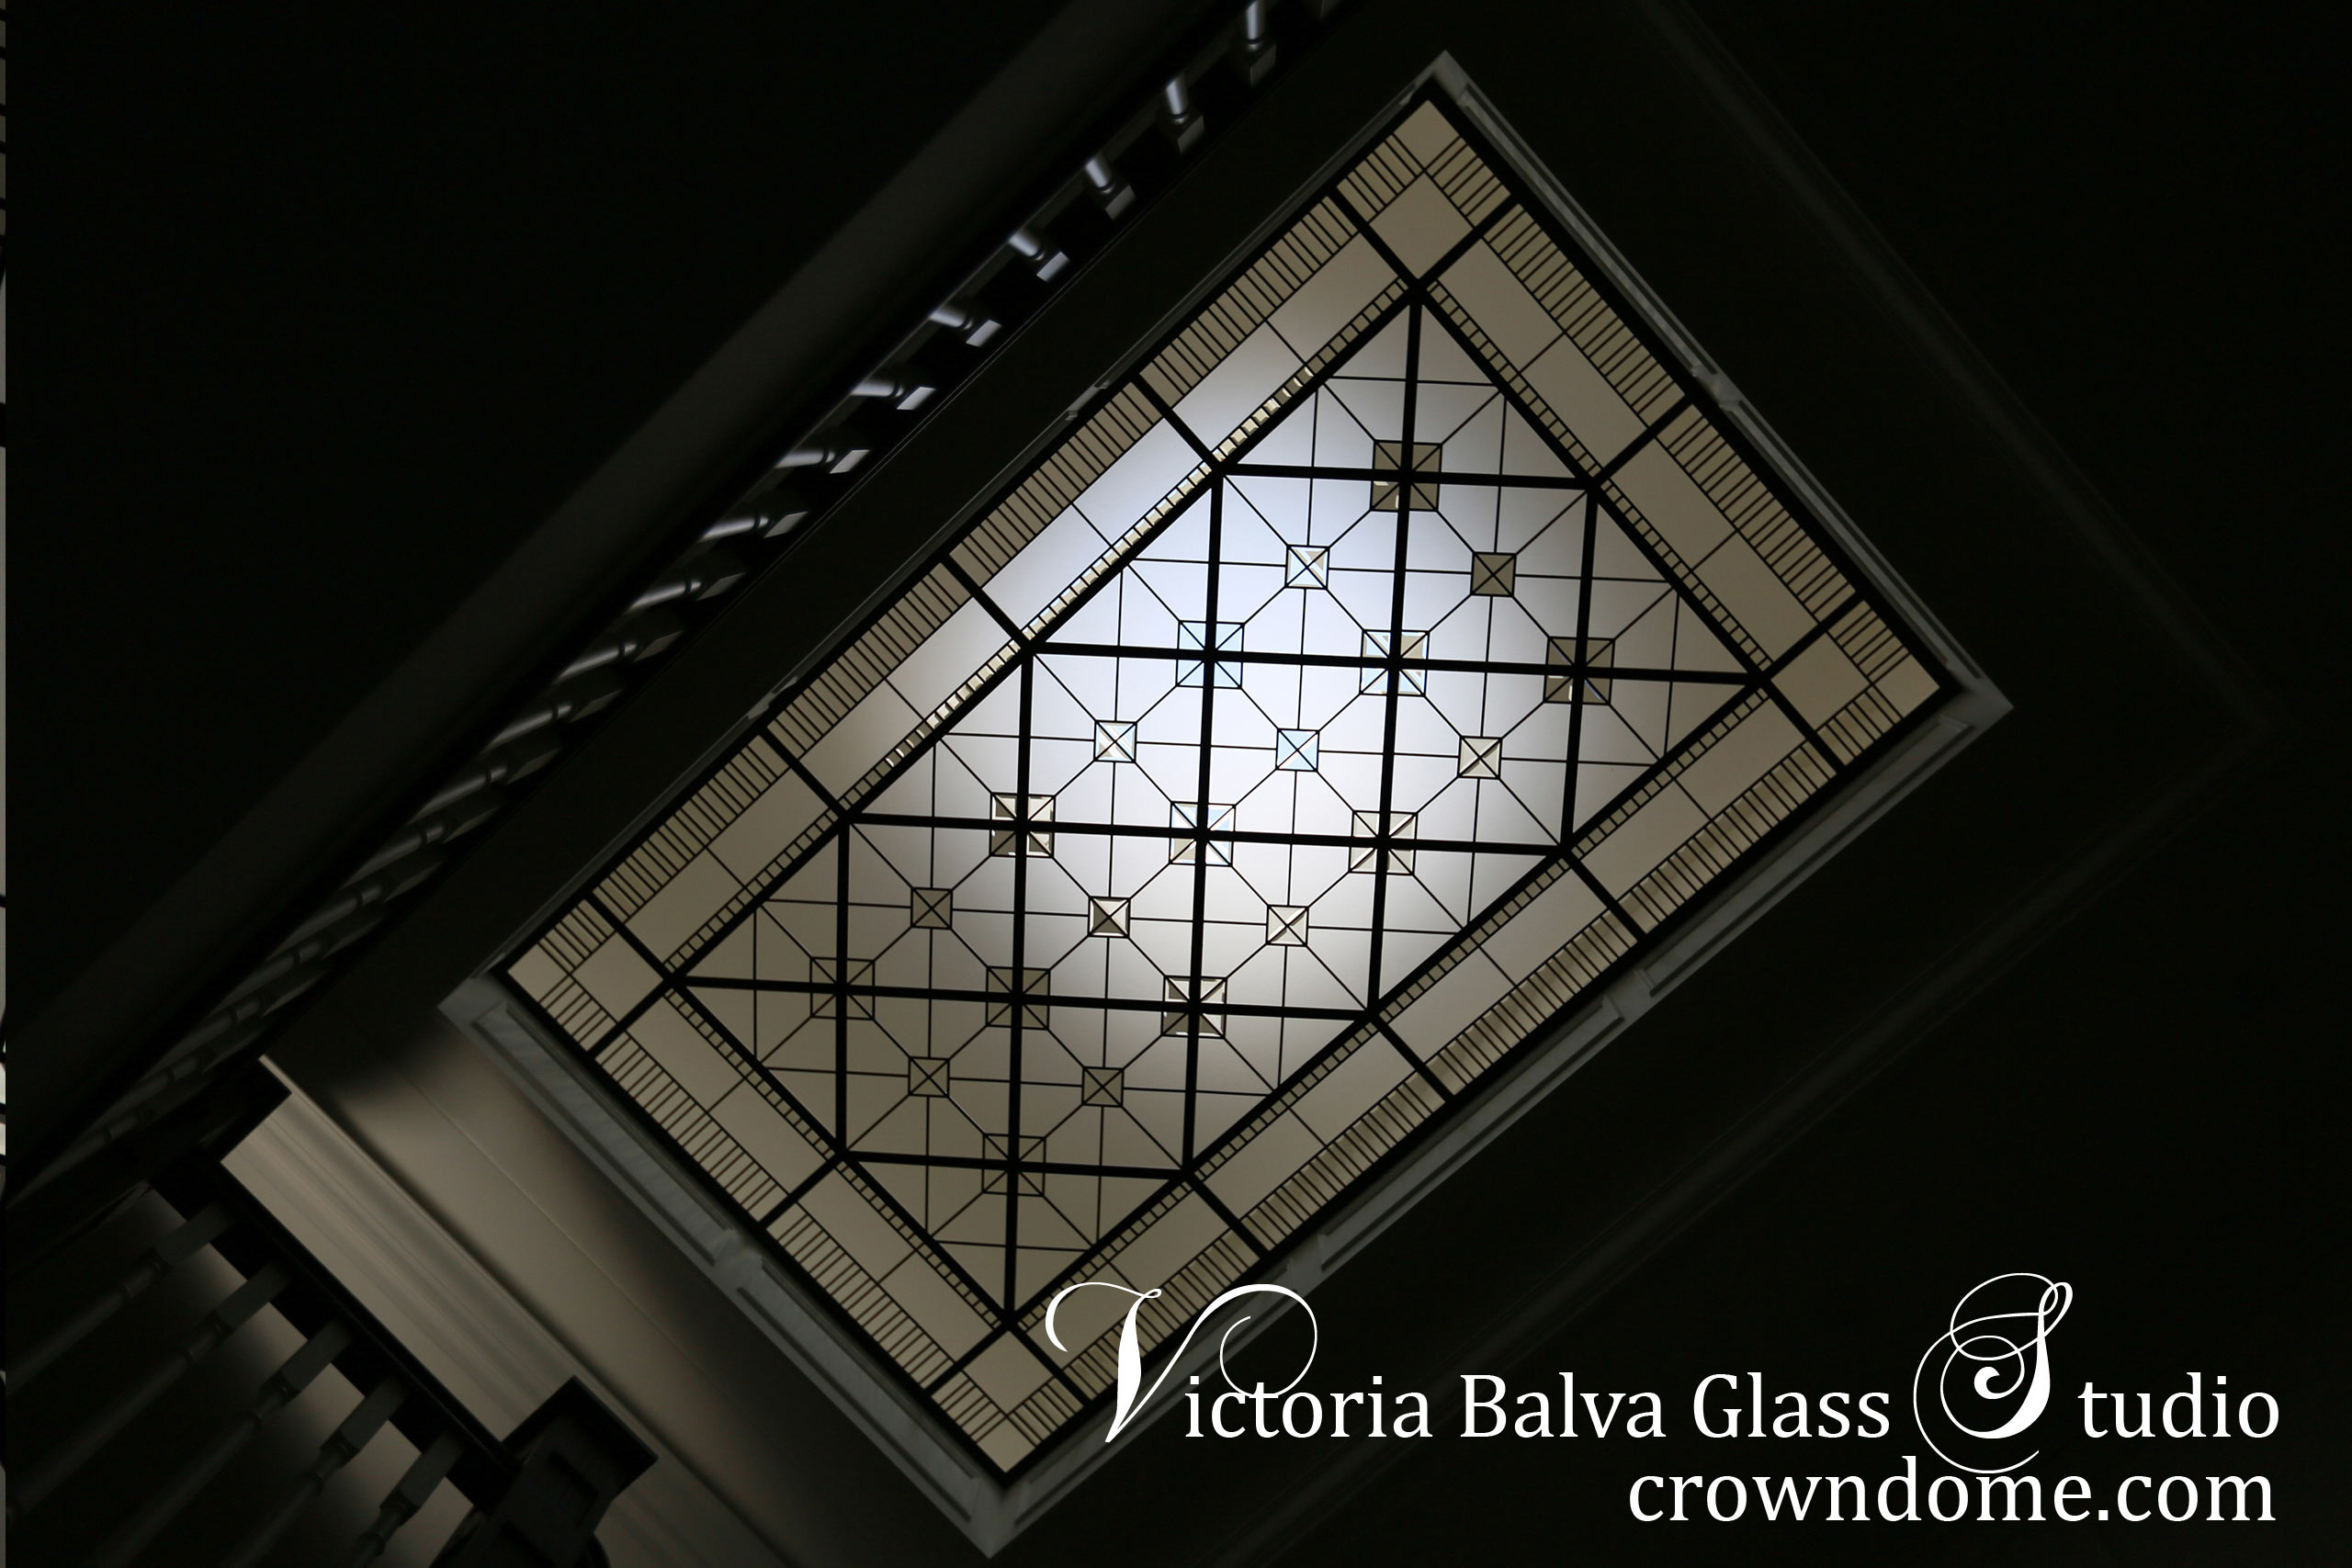 Large geometrical leaded glass skylight with clear beveled glass and clear textured glass for a custom-built house in traditional style. Clear textured glass, beveled glass, intricate line-work geometry. Leaded glass skylight ceiling design by architectural glass artist Victoria Balva